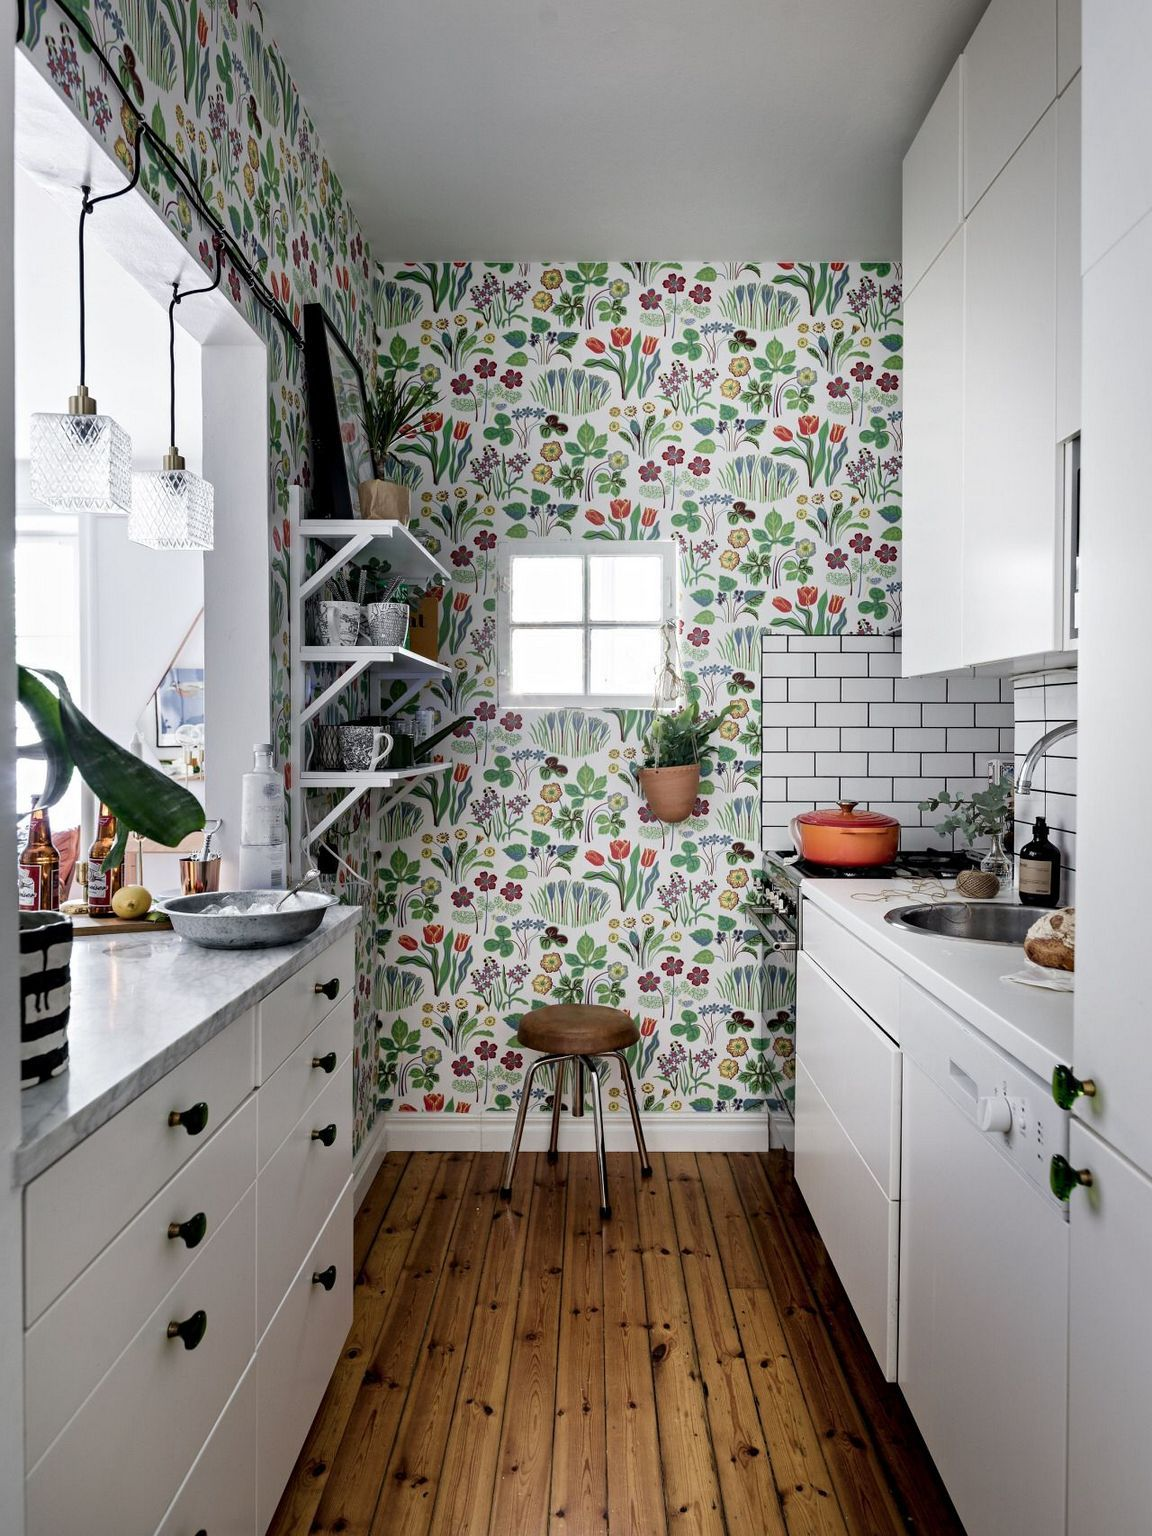 Bathroom Mirrors Can Be Found In Many Sizes And Patterns So Consider What You Could Do In Order To M Kitchen Wallpaper Modern Kitchen Wallpaper Kitchen Design